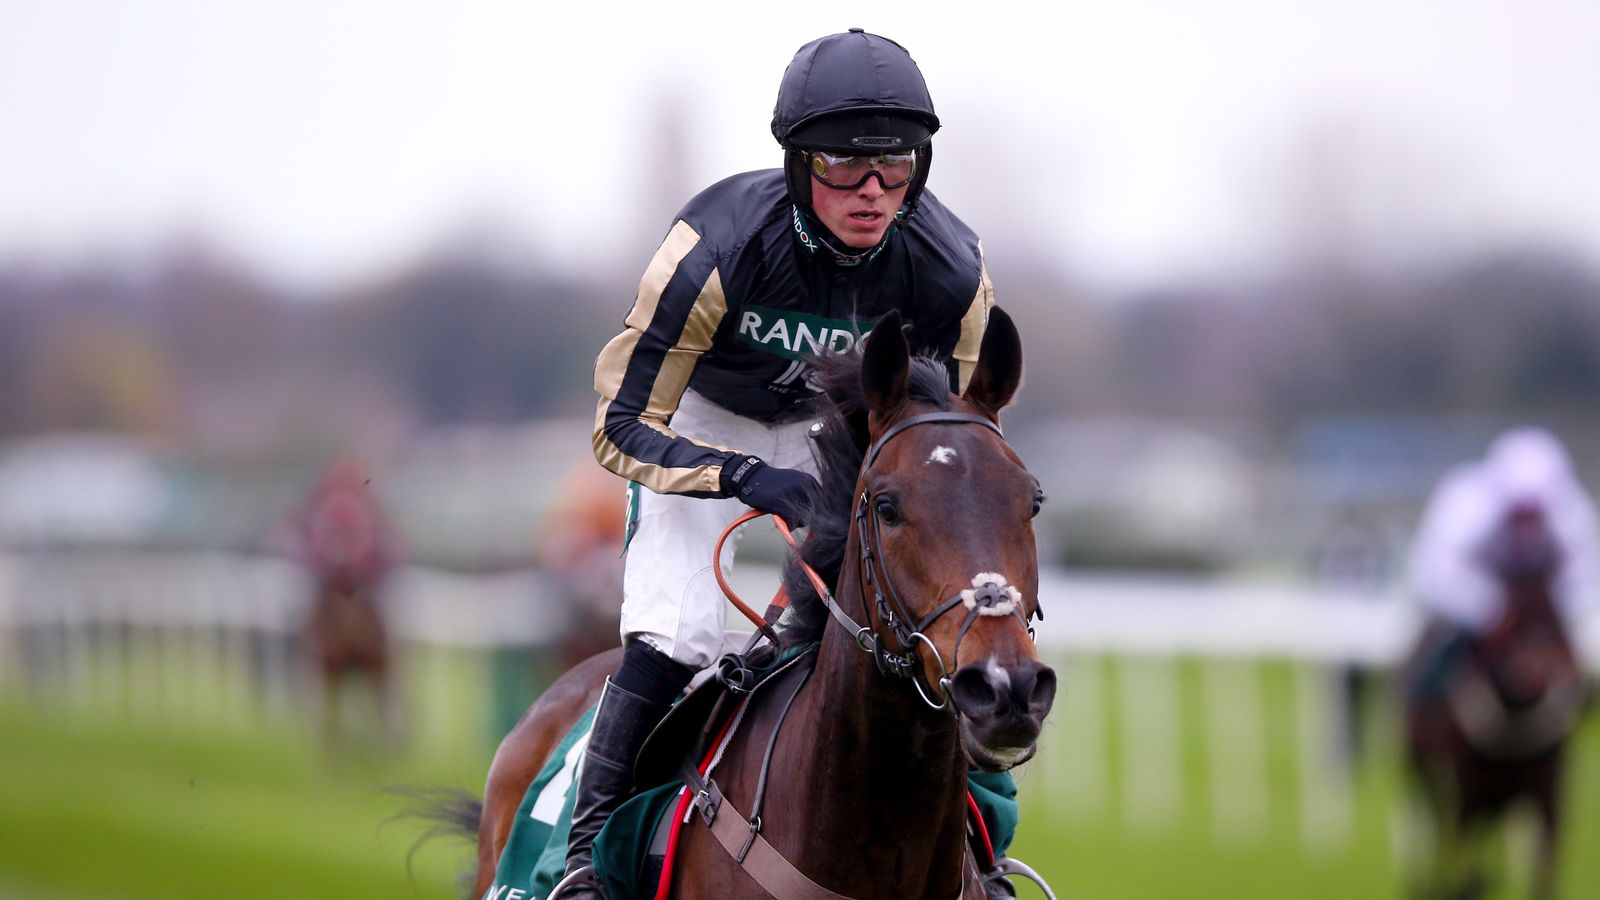 Harry Cobden excited by novice hurdle prospect McFabulous - Sky Sports